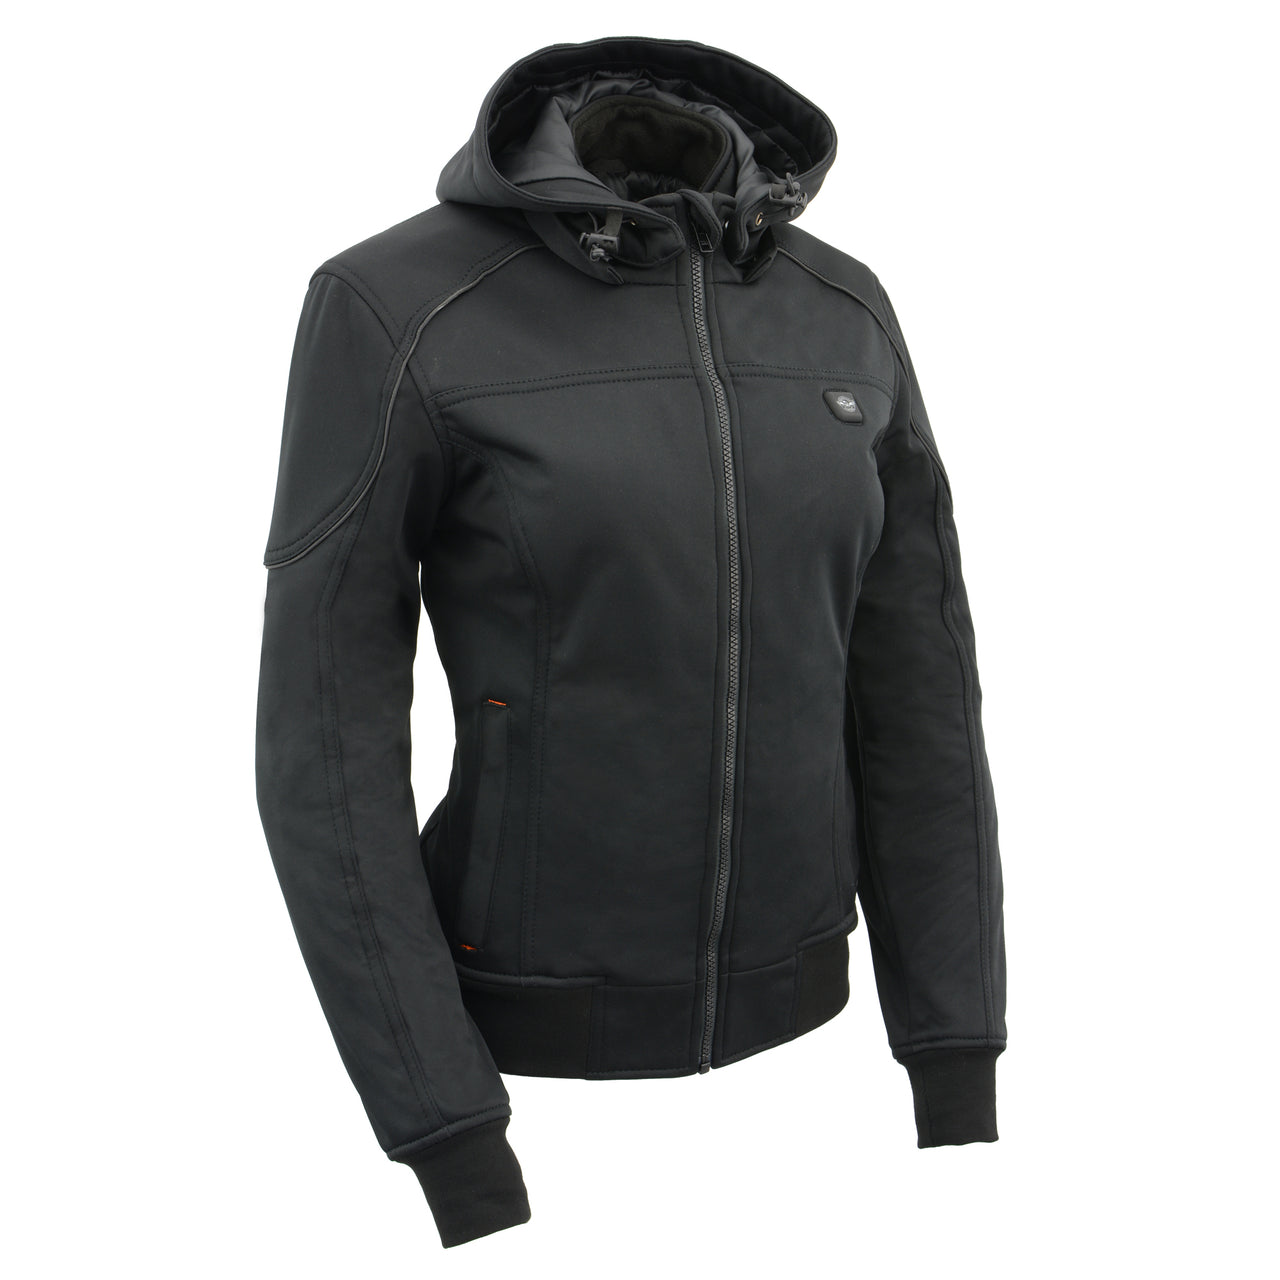 Womens Soft Shell Heated Racing Style Jacket with Detachable Hood - HighwayLeather